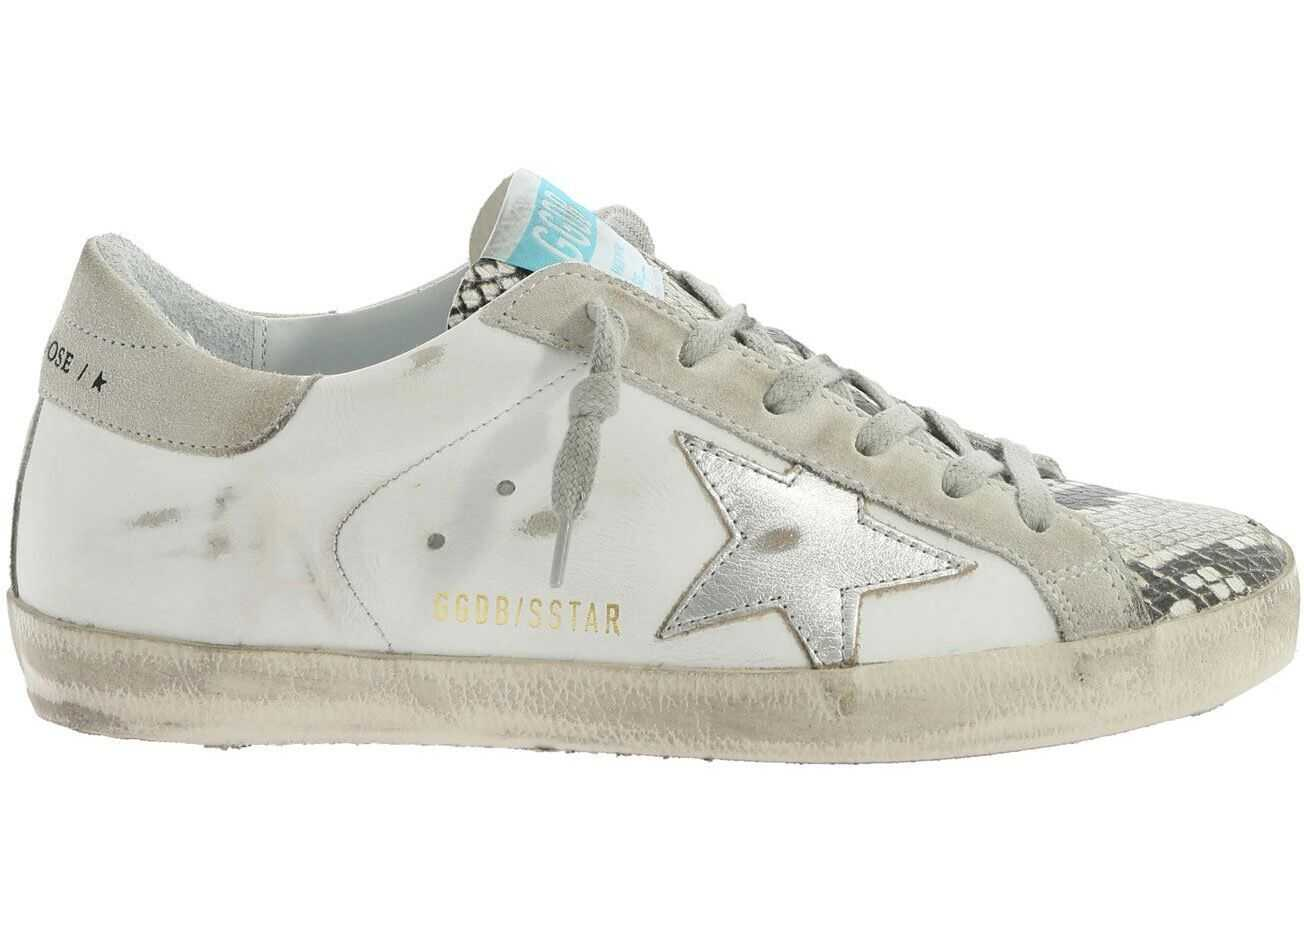 Golden Goose Reptile Details Sneakers In White White